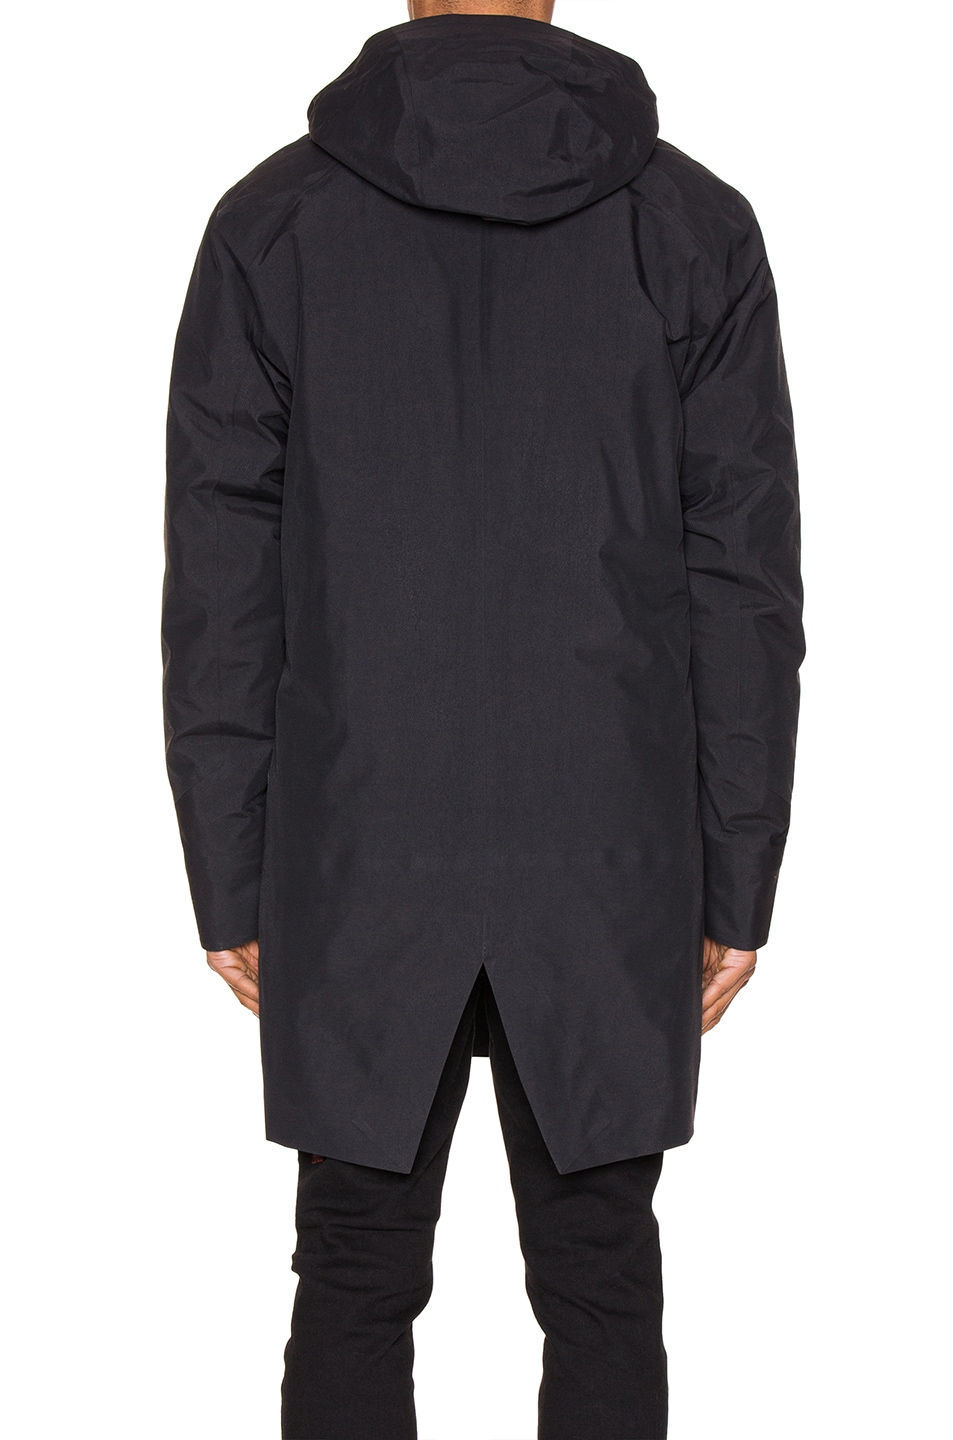 Image 4 of Arc'teryx Veilance Monitor Down Coat in Black